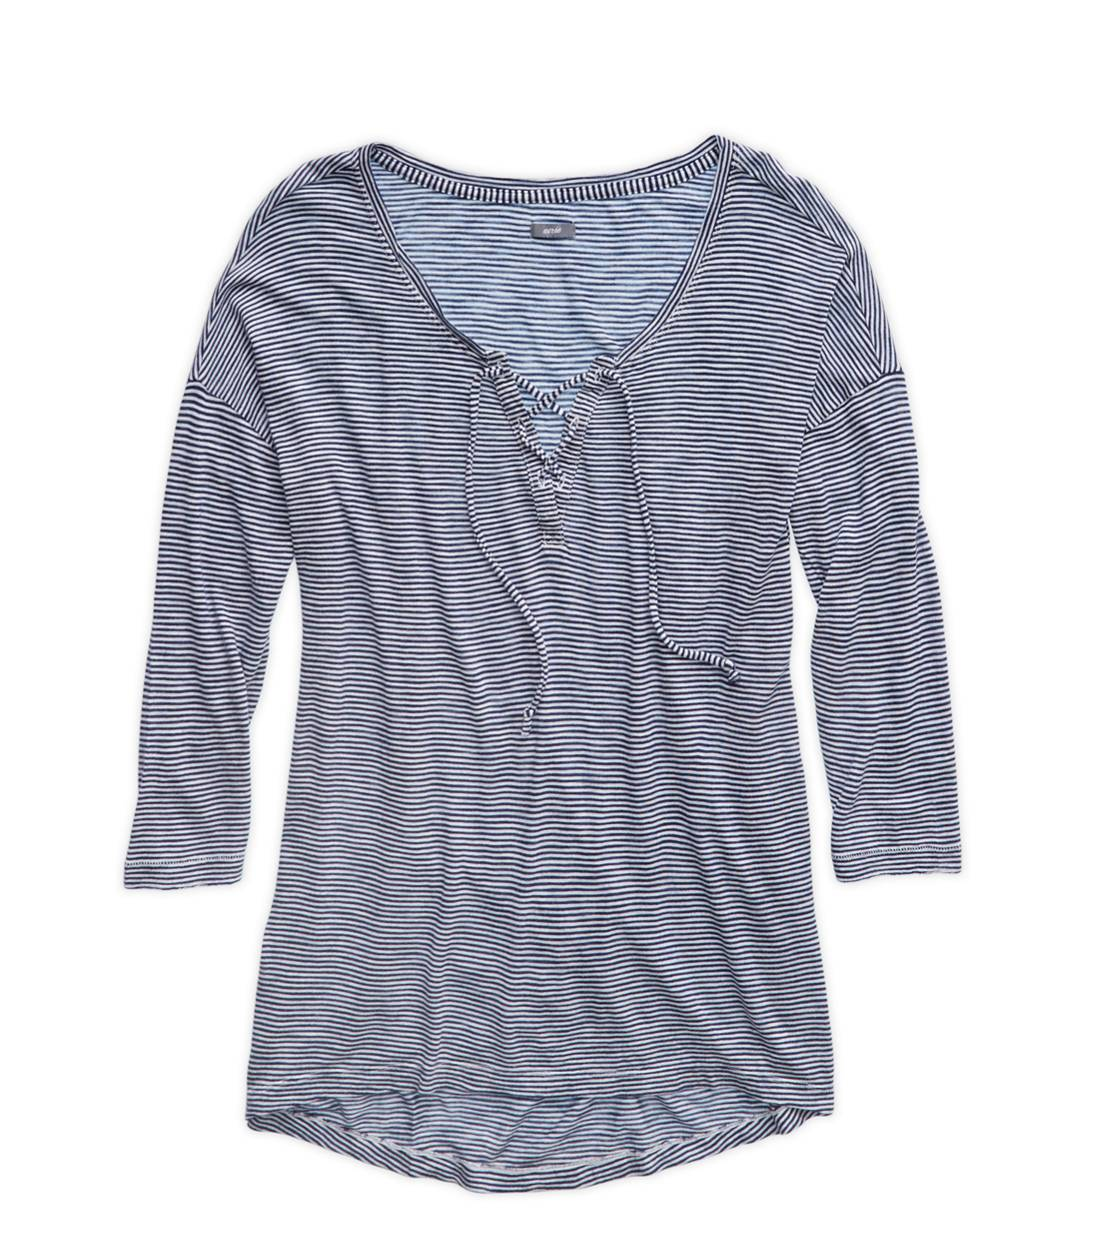 Odyssey Blue Aerie Comfy Striped Lace-Up T-Shirt